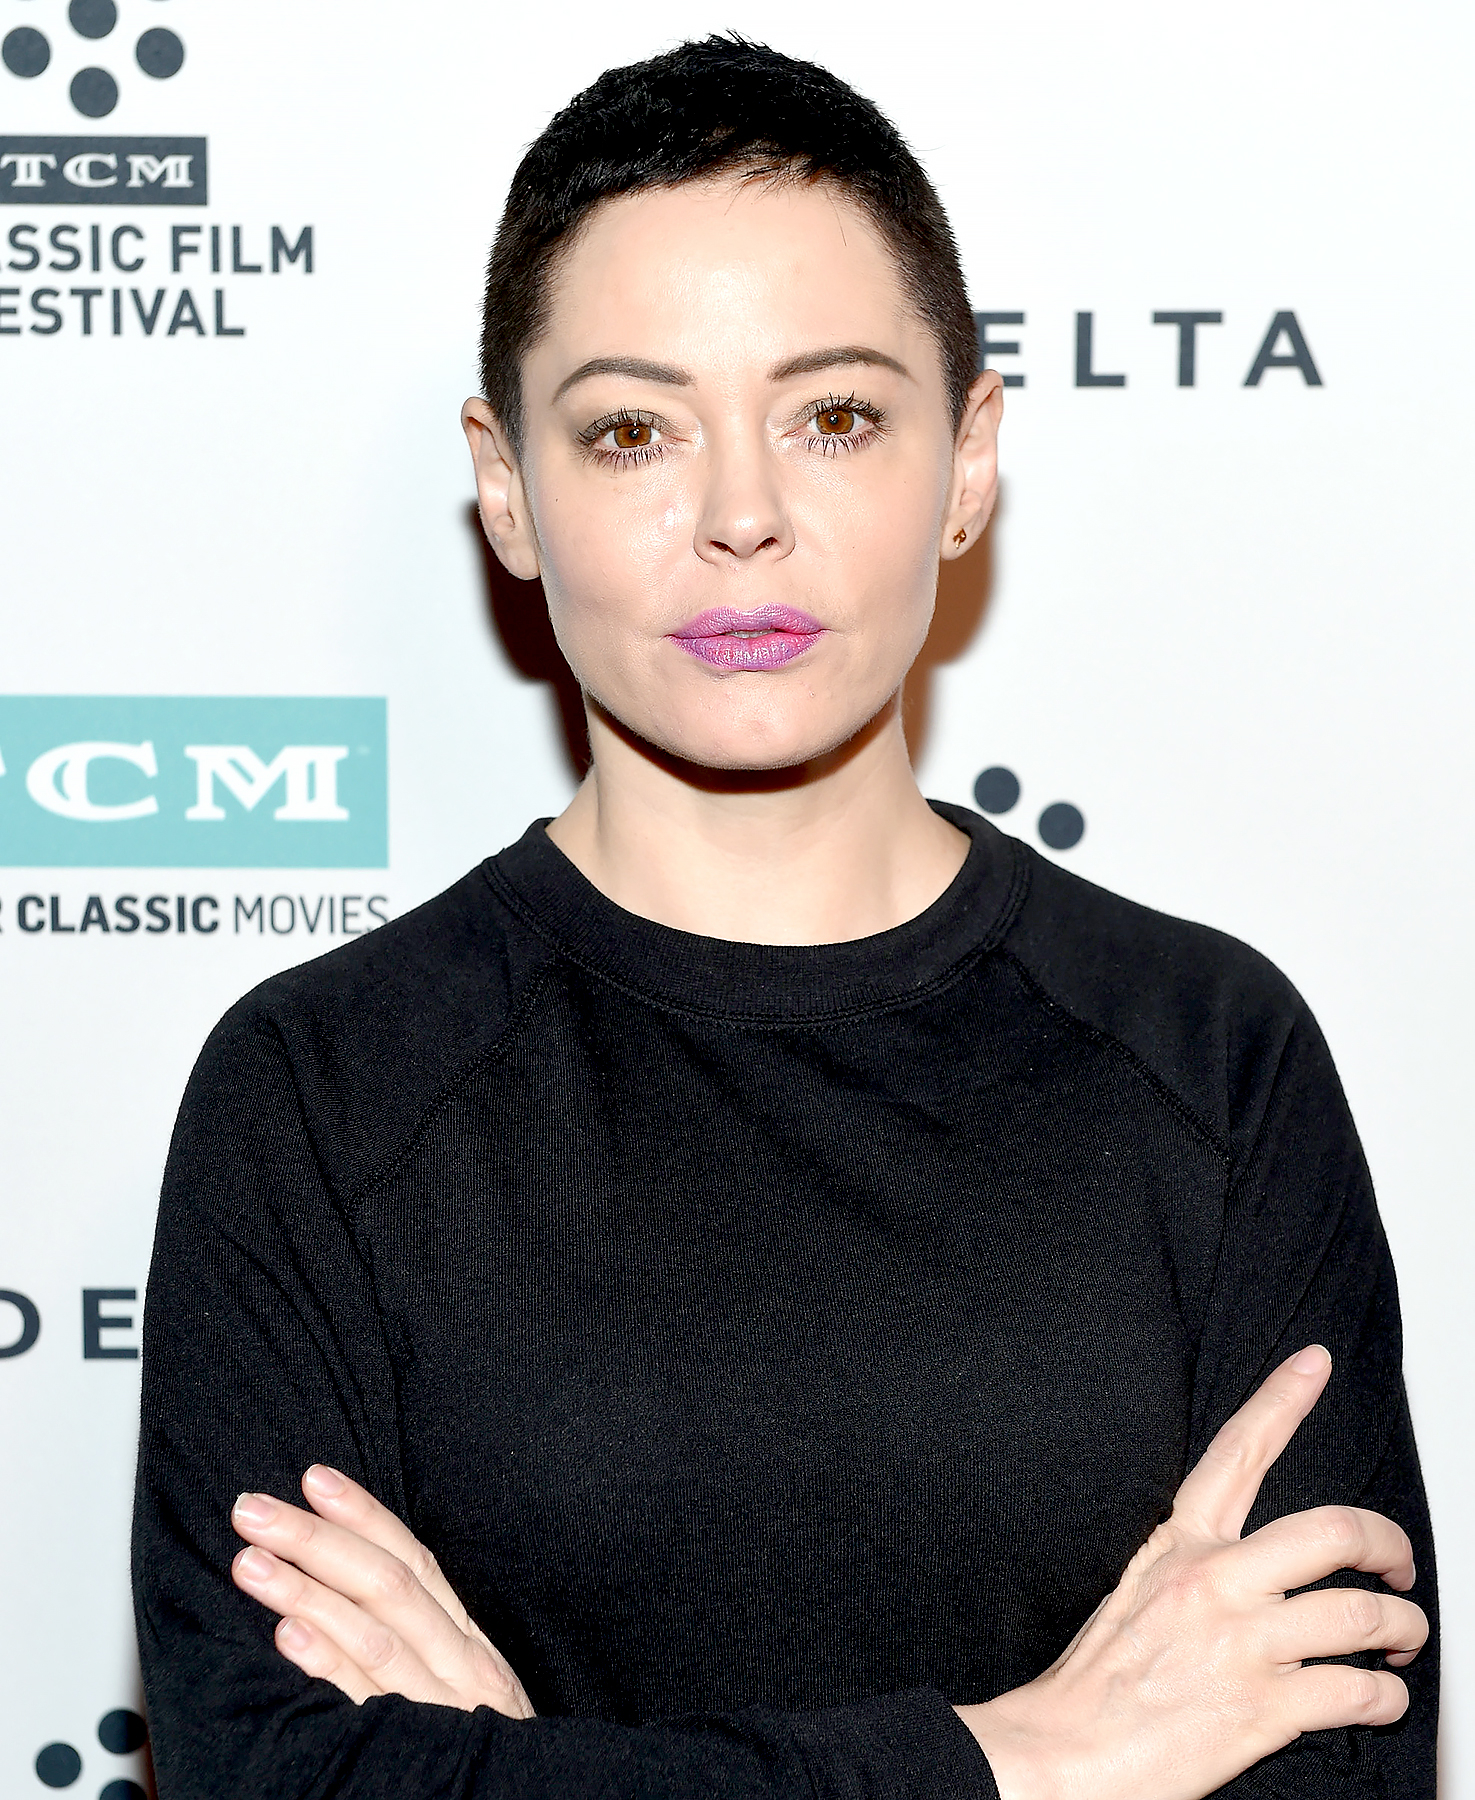 Amber Tamblyn and Rose McGowan clash over Golden Globes protest